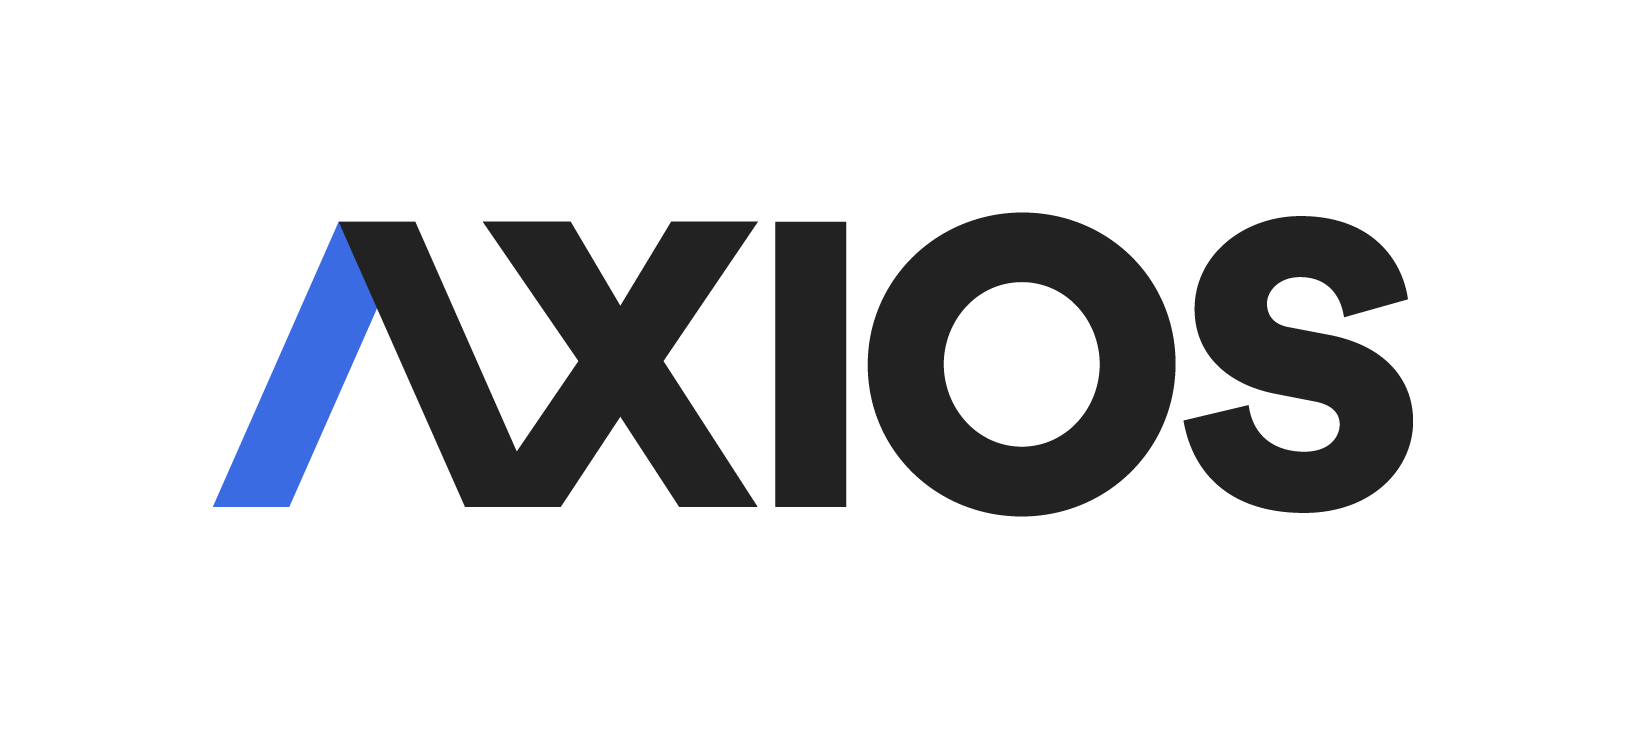 [Varo Money in Axios] Mobile banking startup Varo Money gets its bank charter